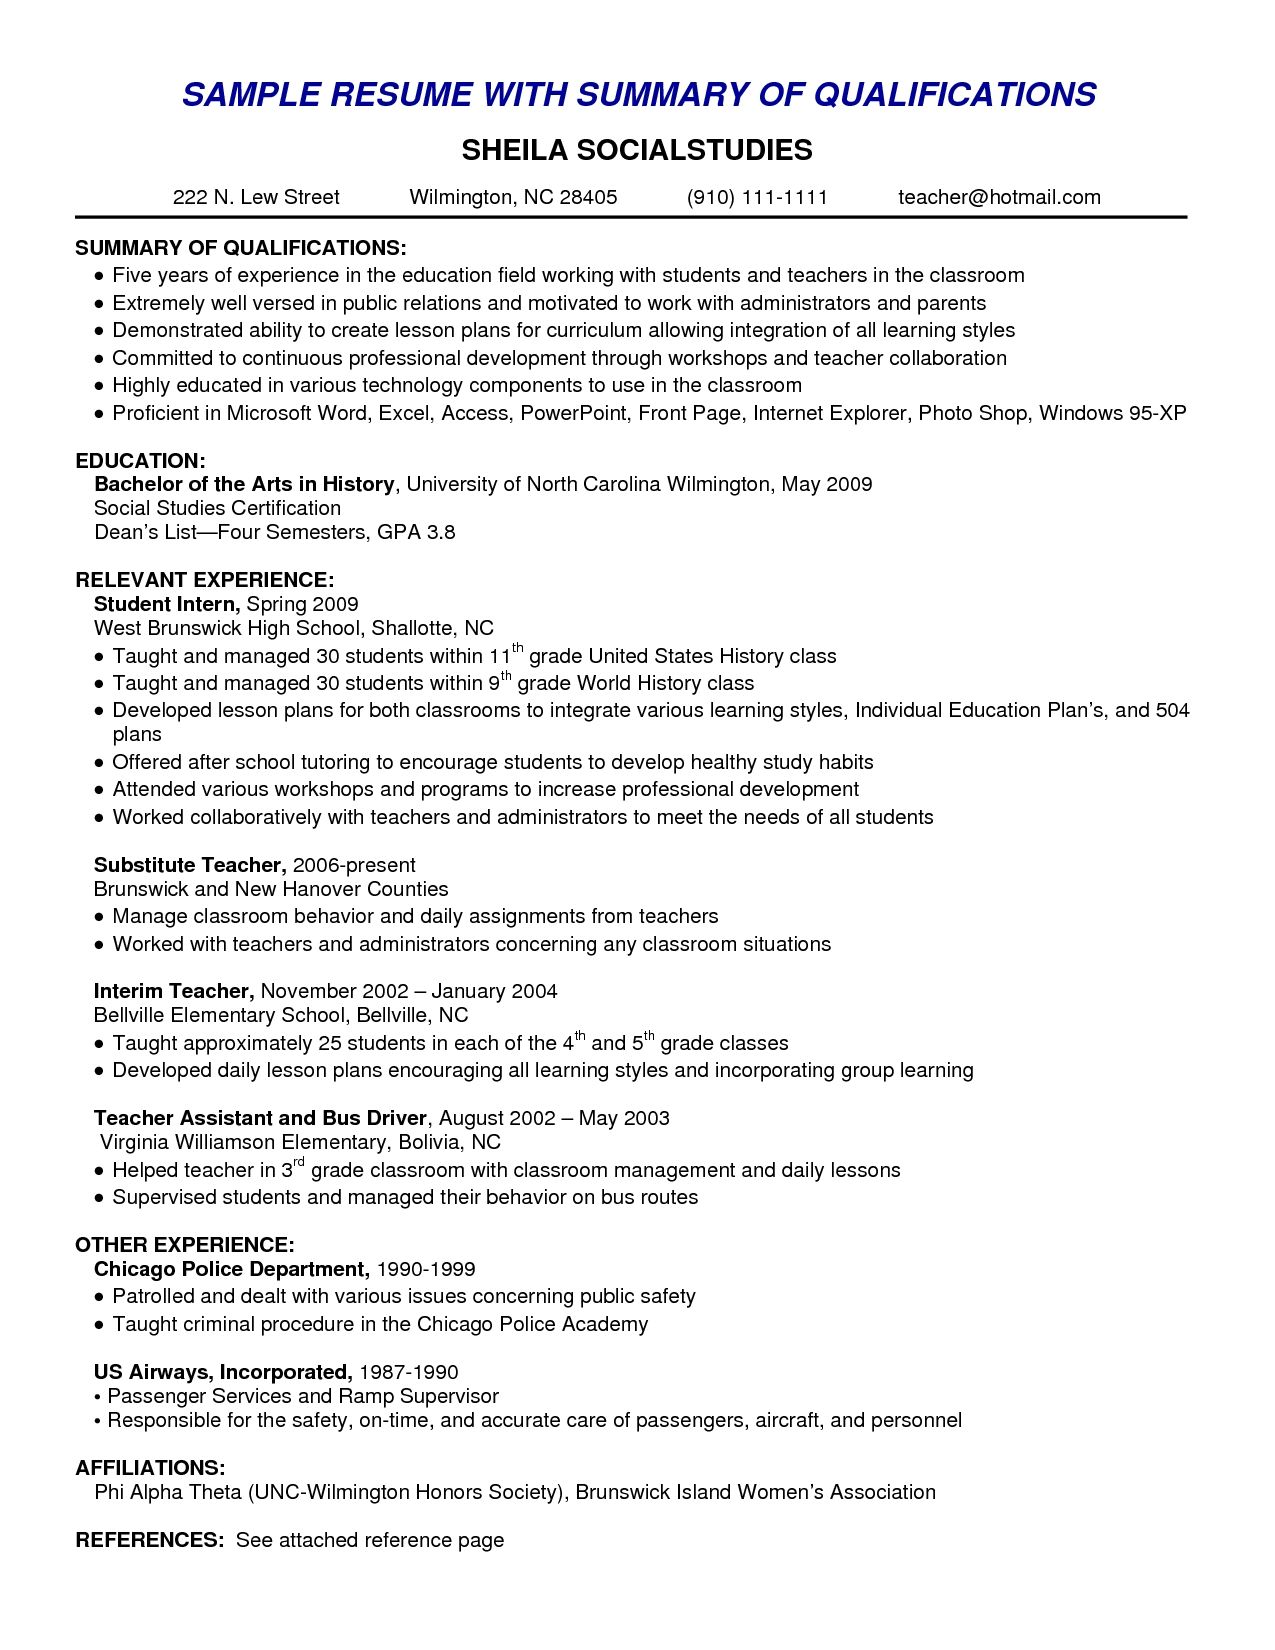 resume skills summary examples example of skills summary for resume amusing summary of skills - Resume Summary Example